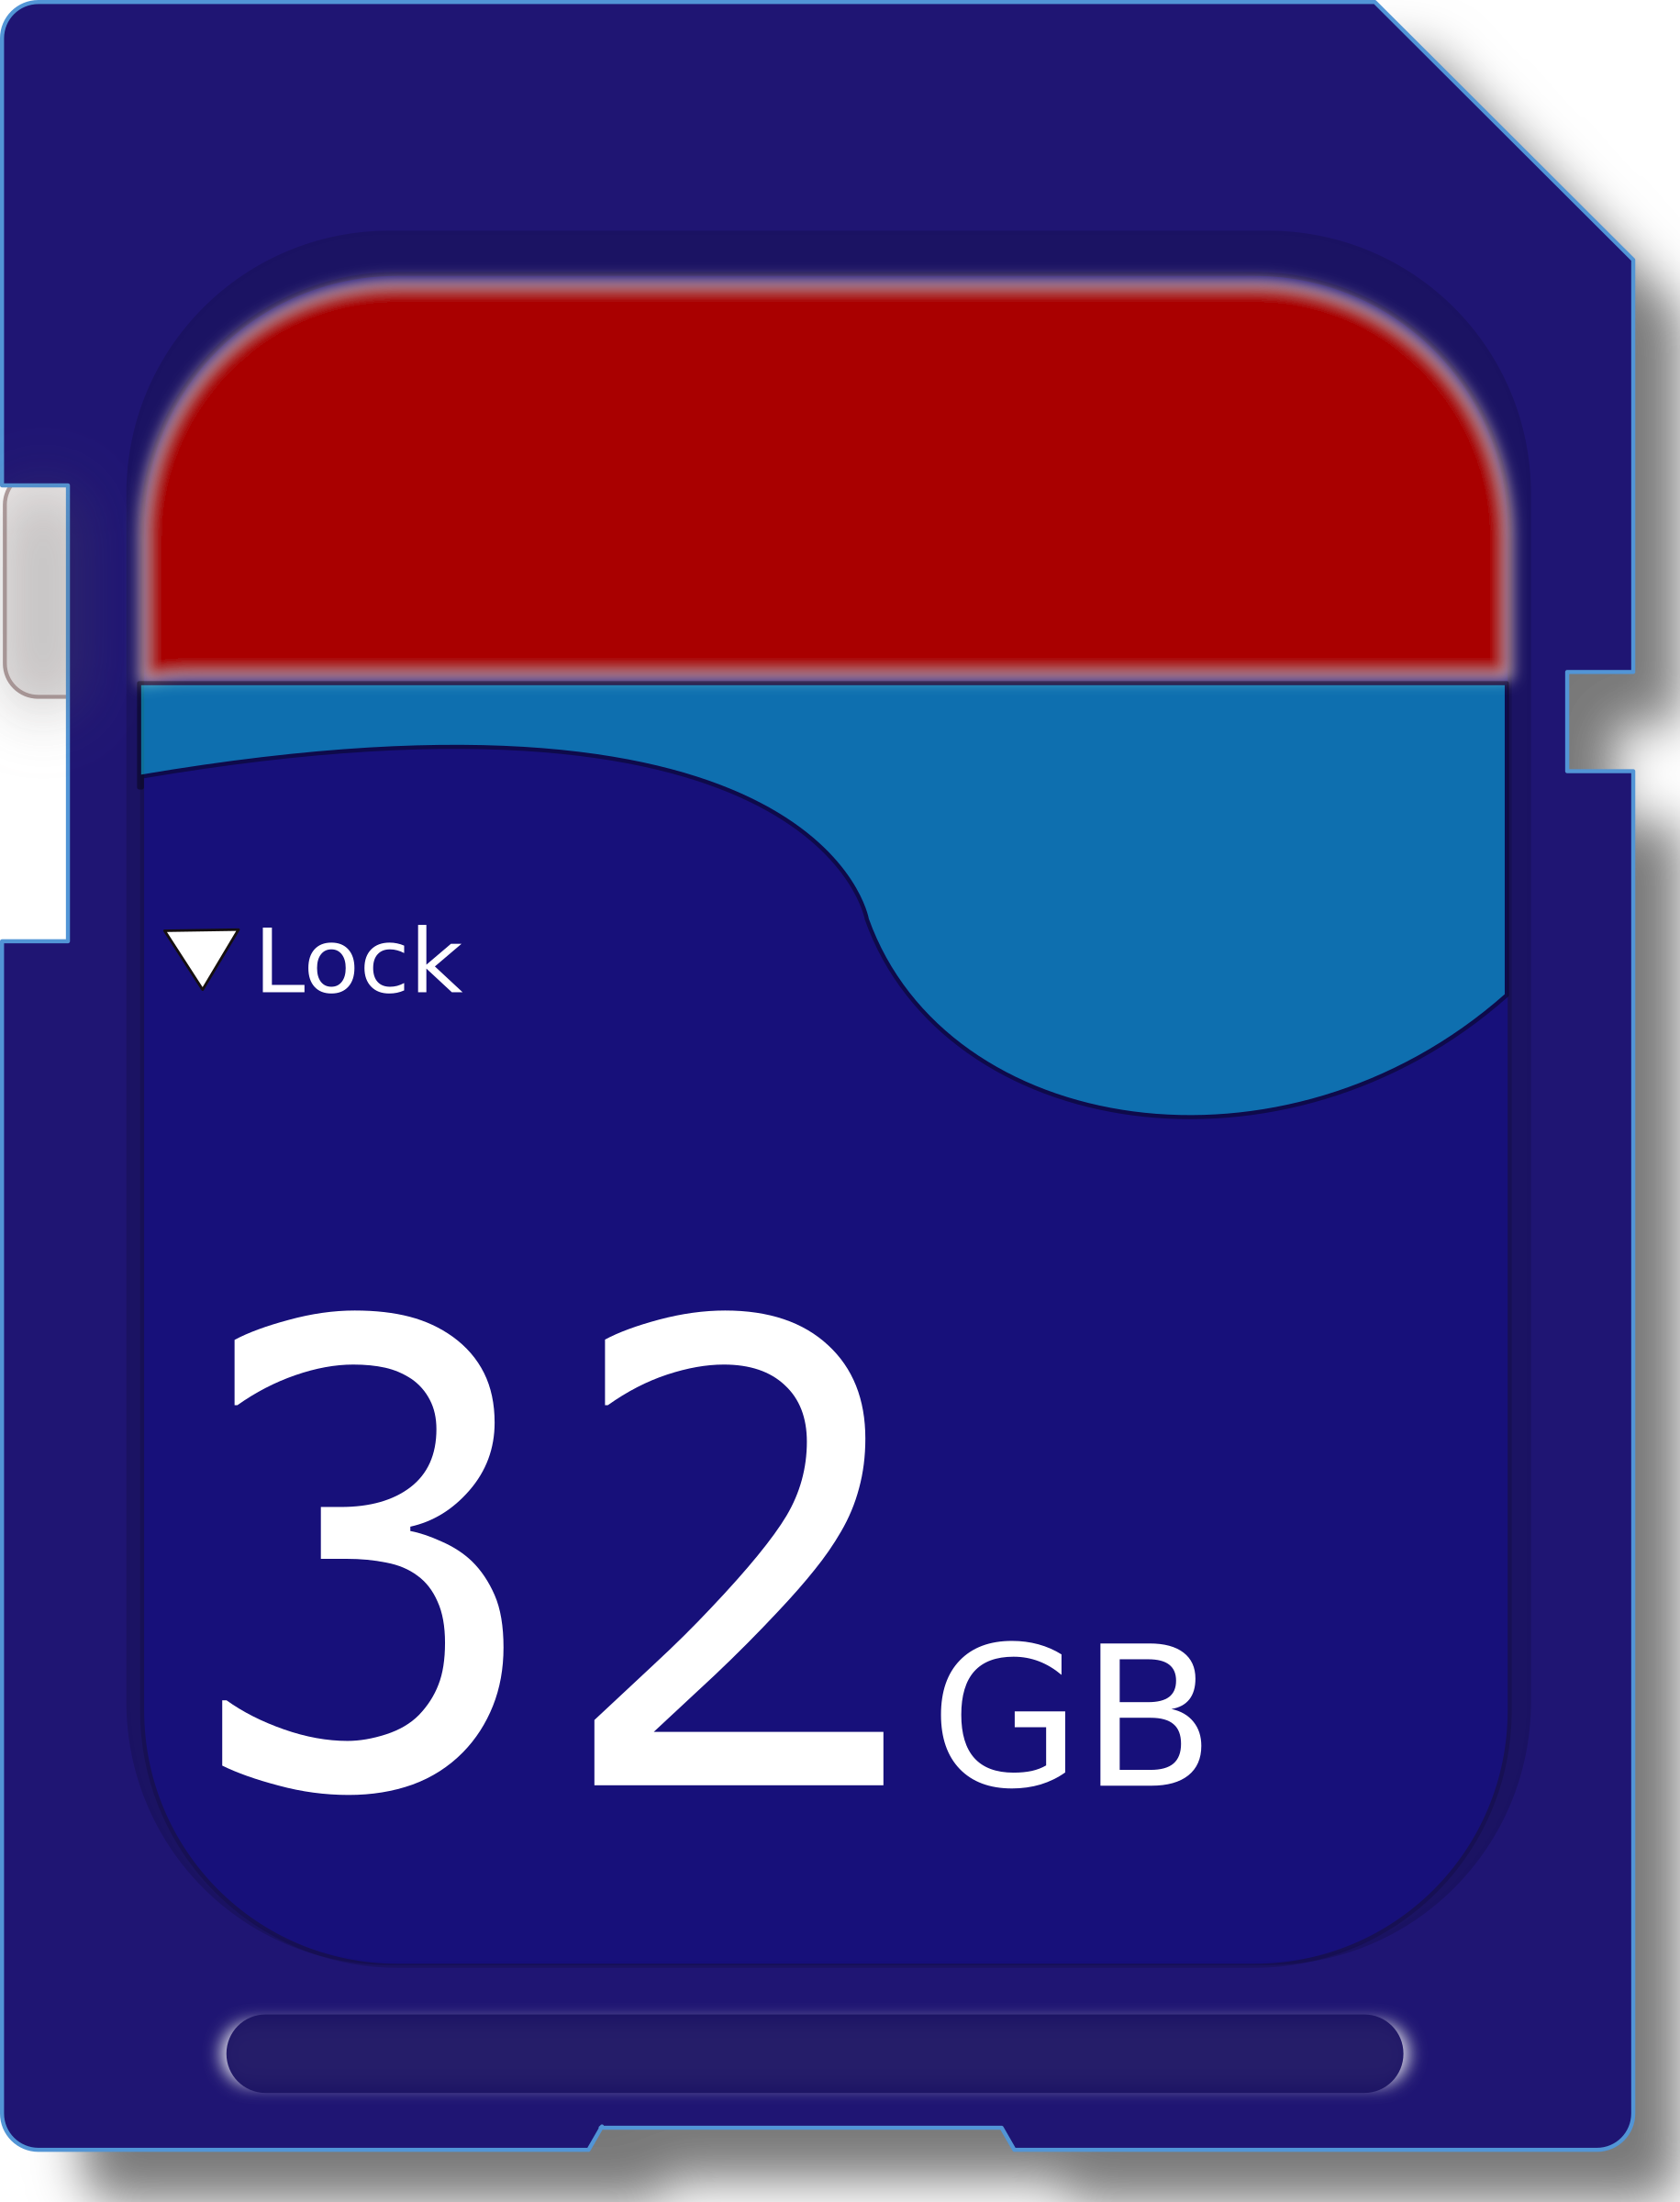 32 GB SD Card vector clipart image.